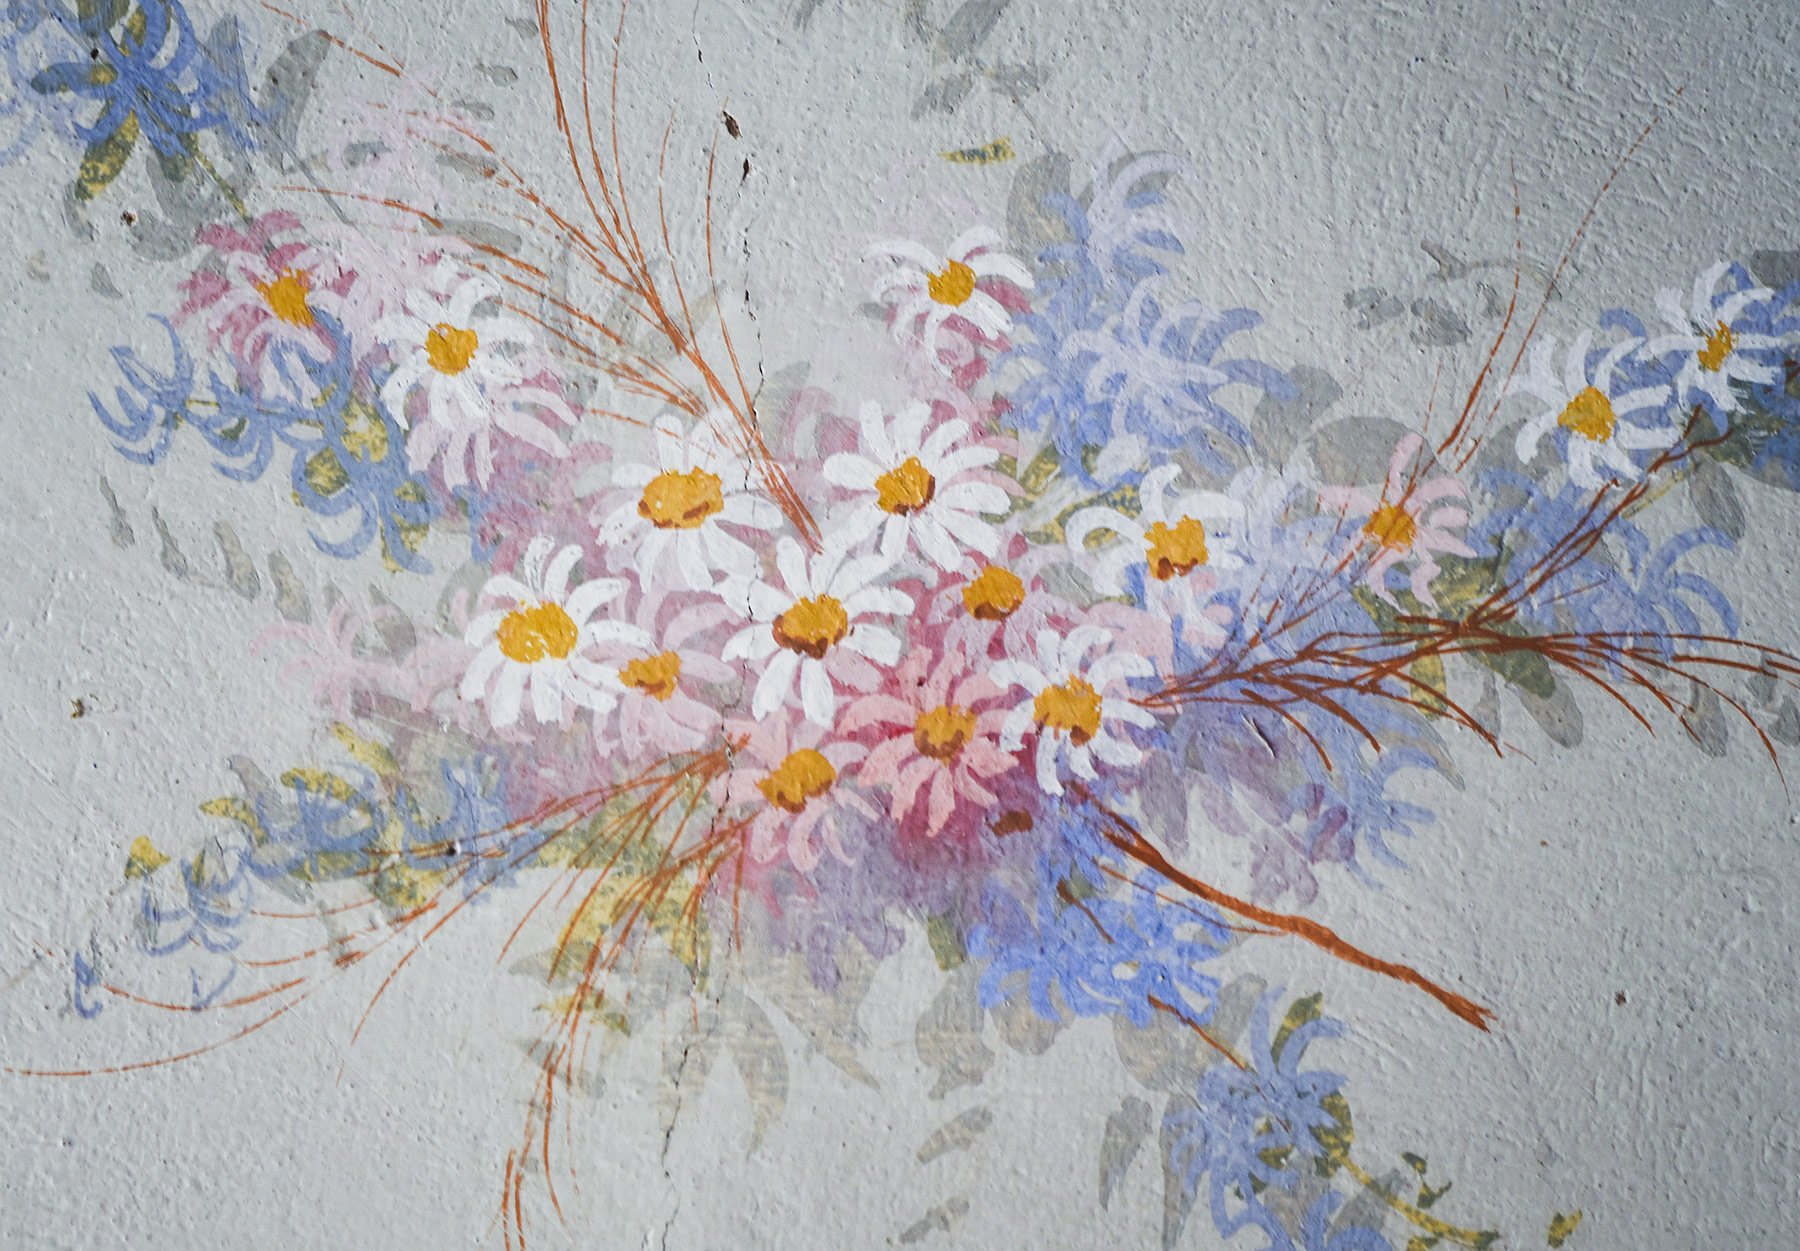 Painted floral mural